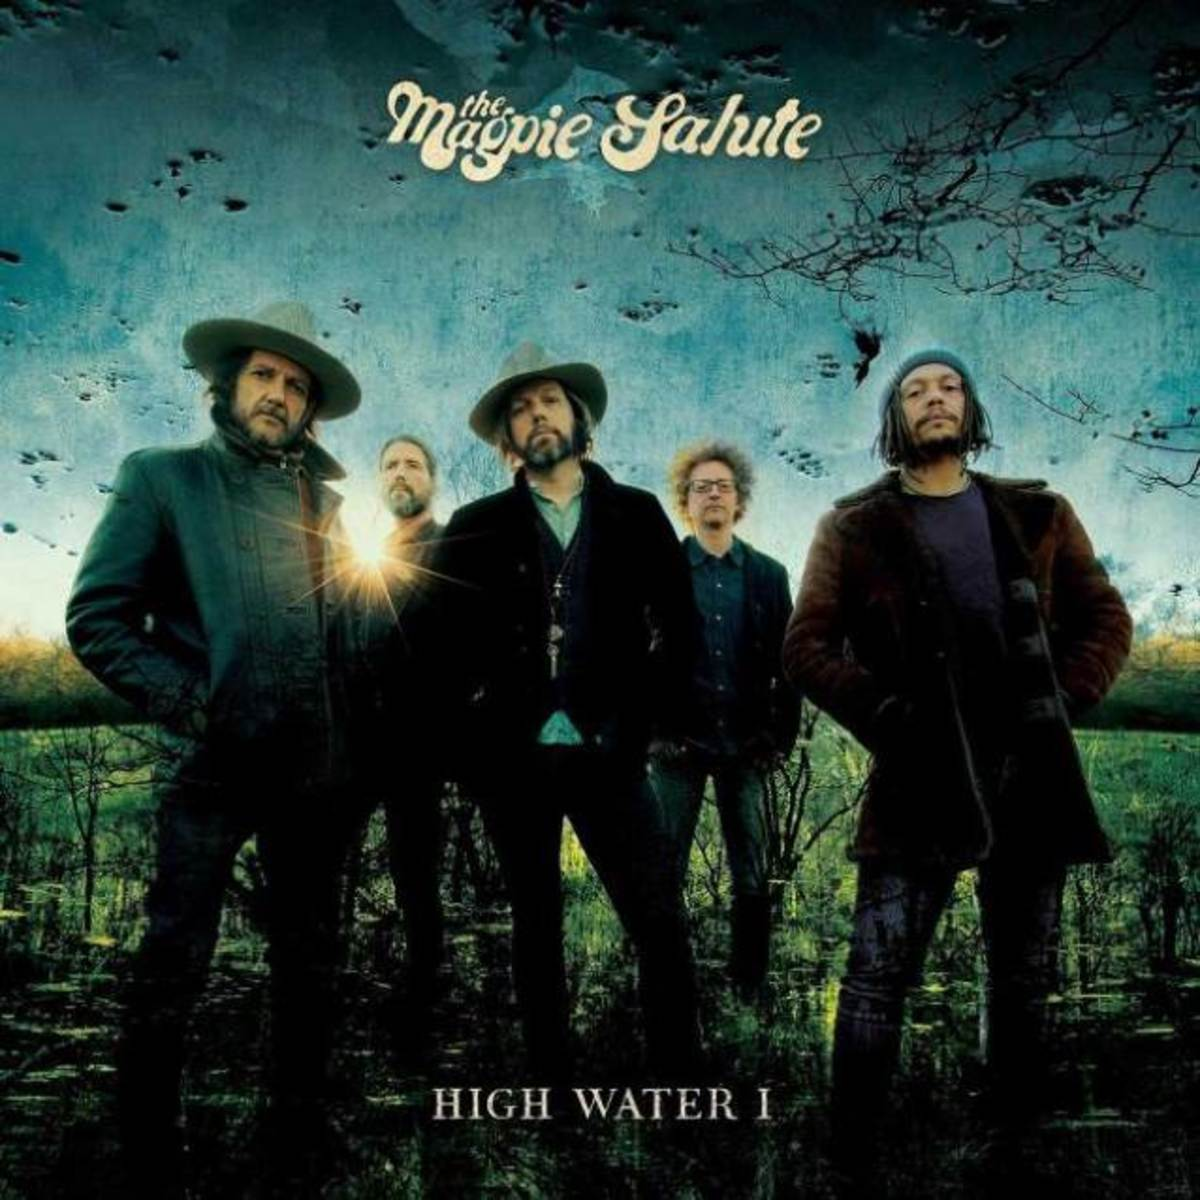 THE MAGPIE SALUTE - High Water 1